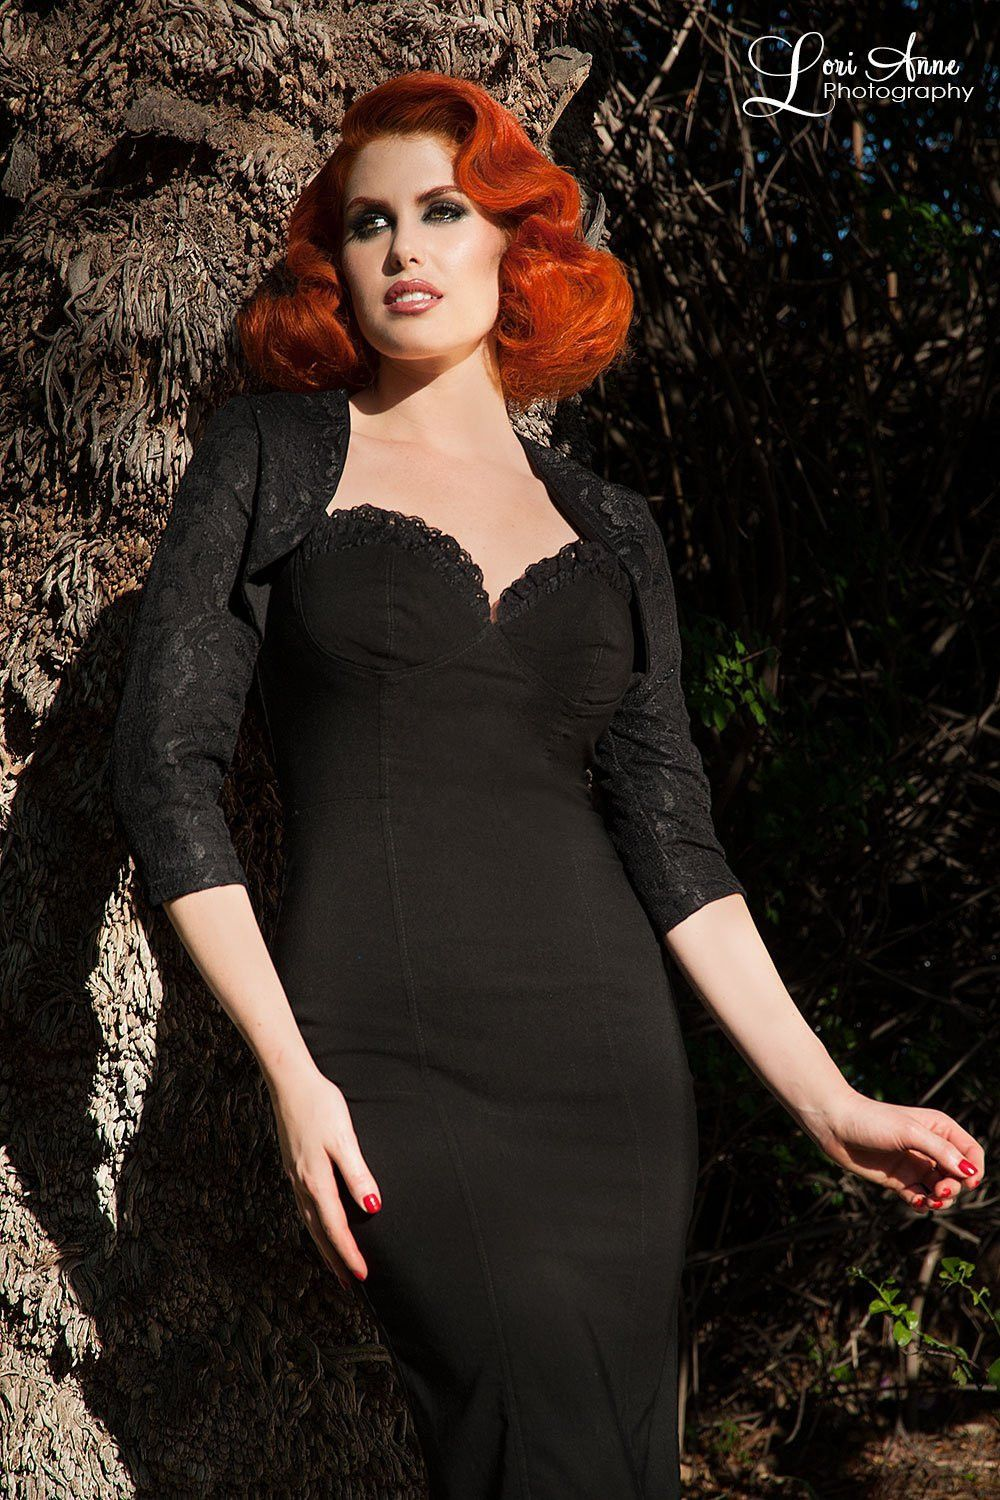 Pinup Couture Shrug In Black Knit With Lace Overlay Pinup Girl Clothing Pinup Couture Glamorous Evening Dresses Pinup Girl Clothing